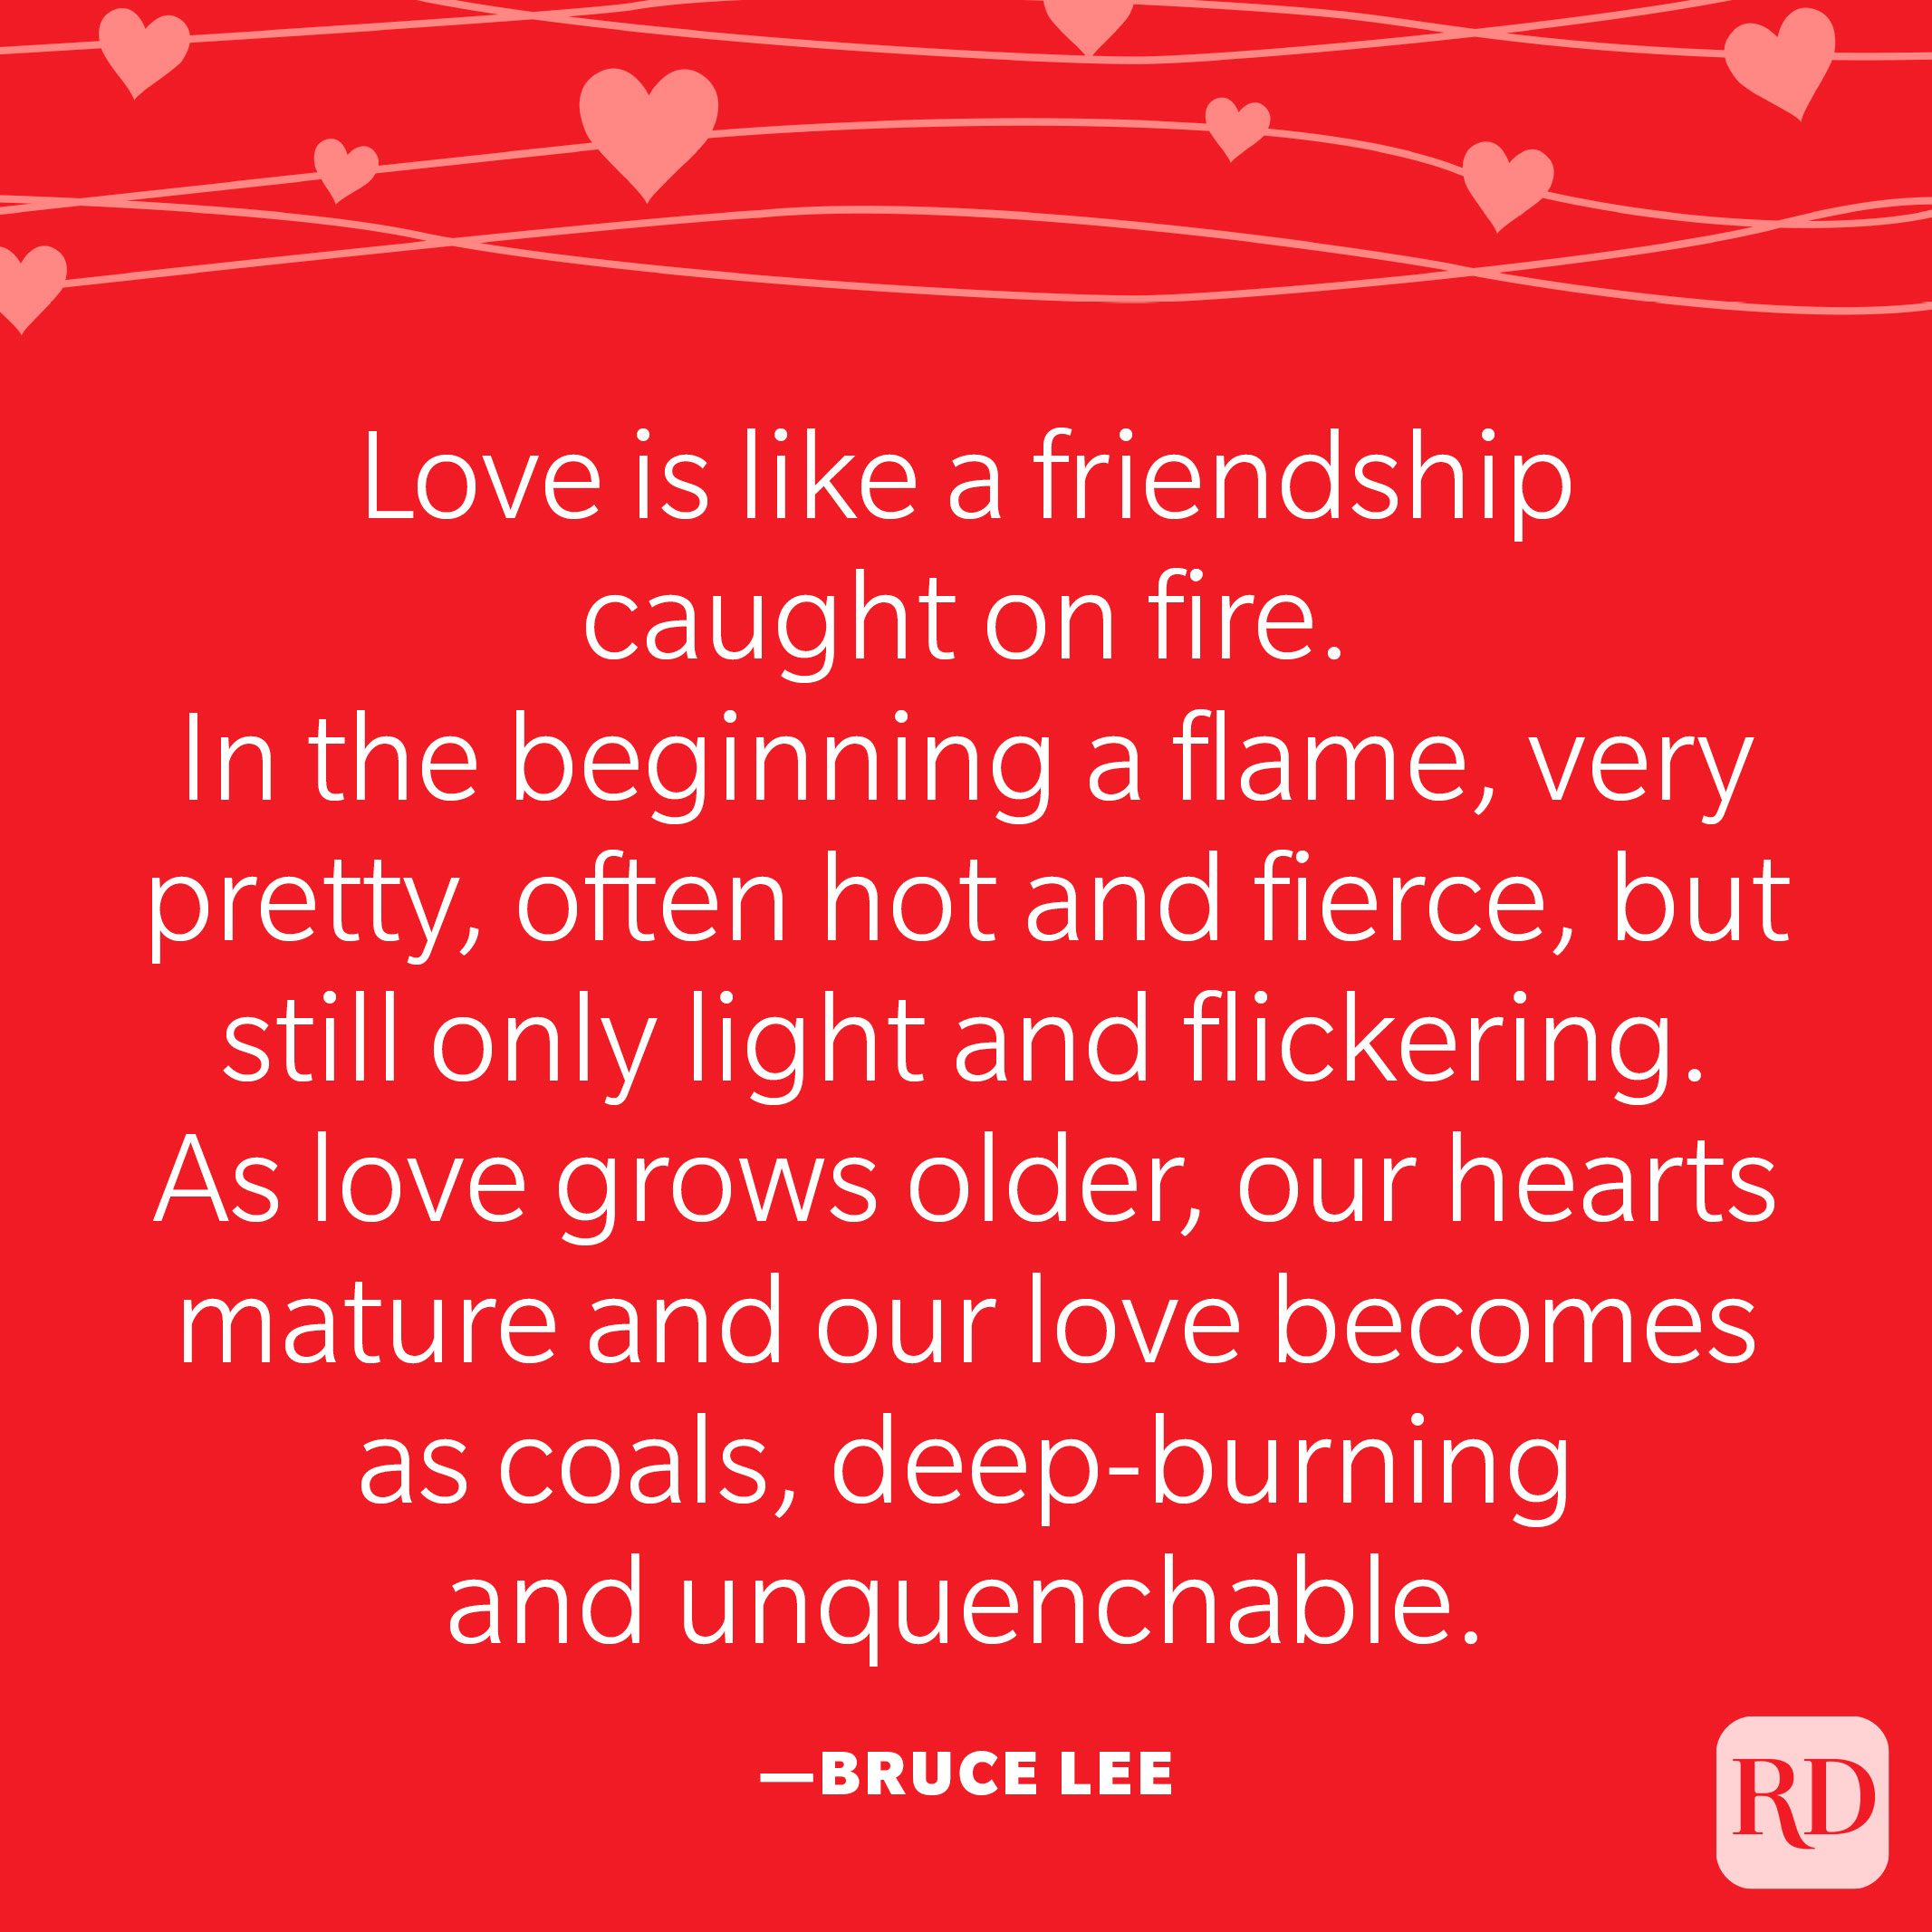 """'""""Love is like a friendship caught on fire. In the beginning a flame, very pretty, often hot and fierce, but still only light and flickering. As love grows older, our hearts mature and our love becomes as coals, deep-burning and unquenchable."""" —Bruce Lee"""